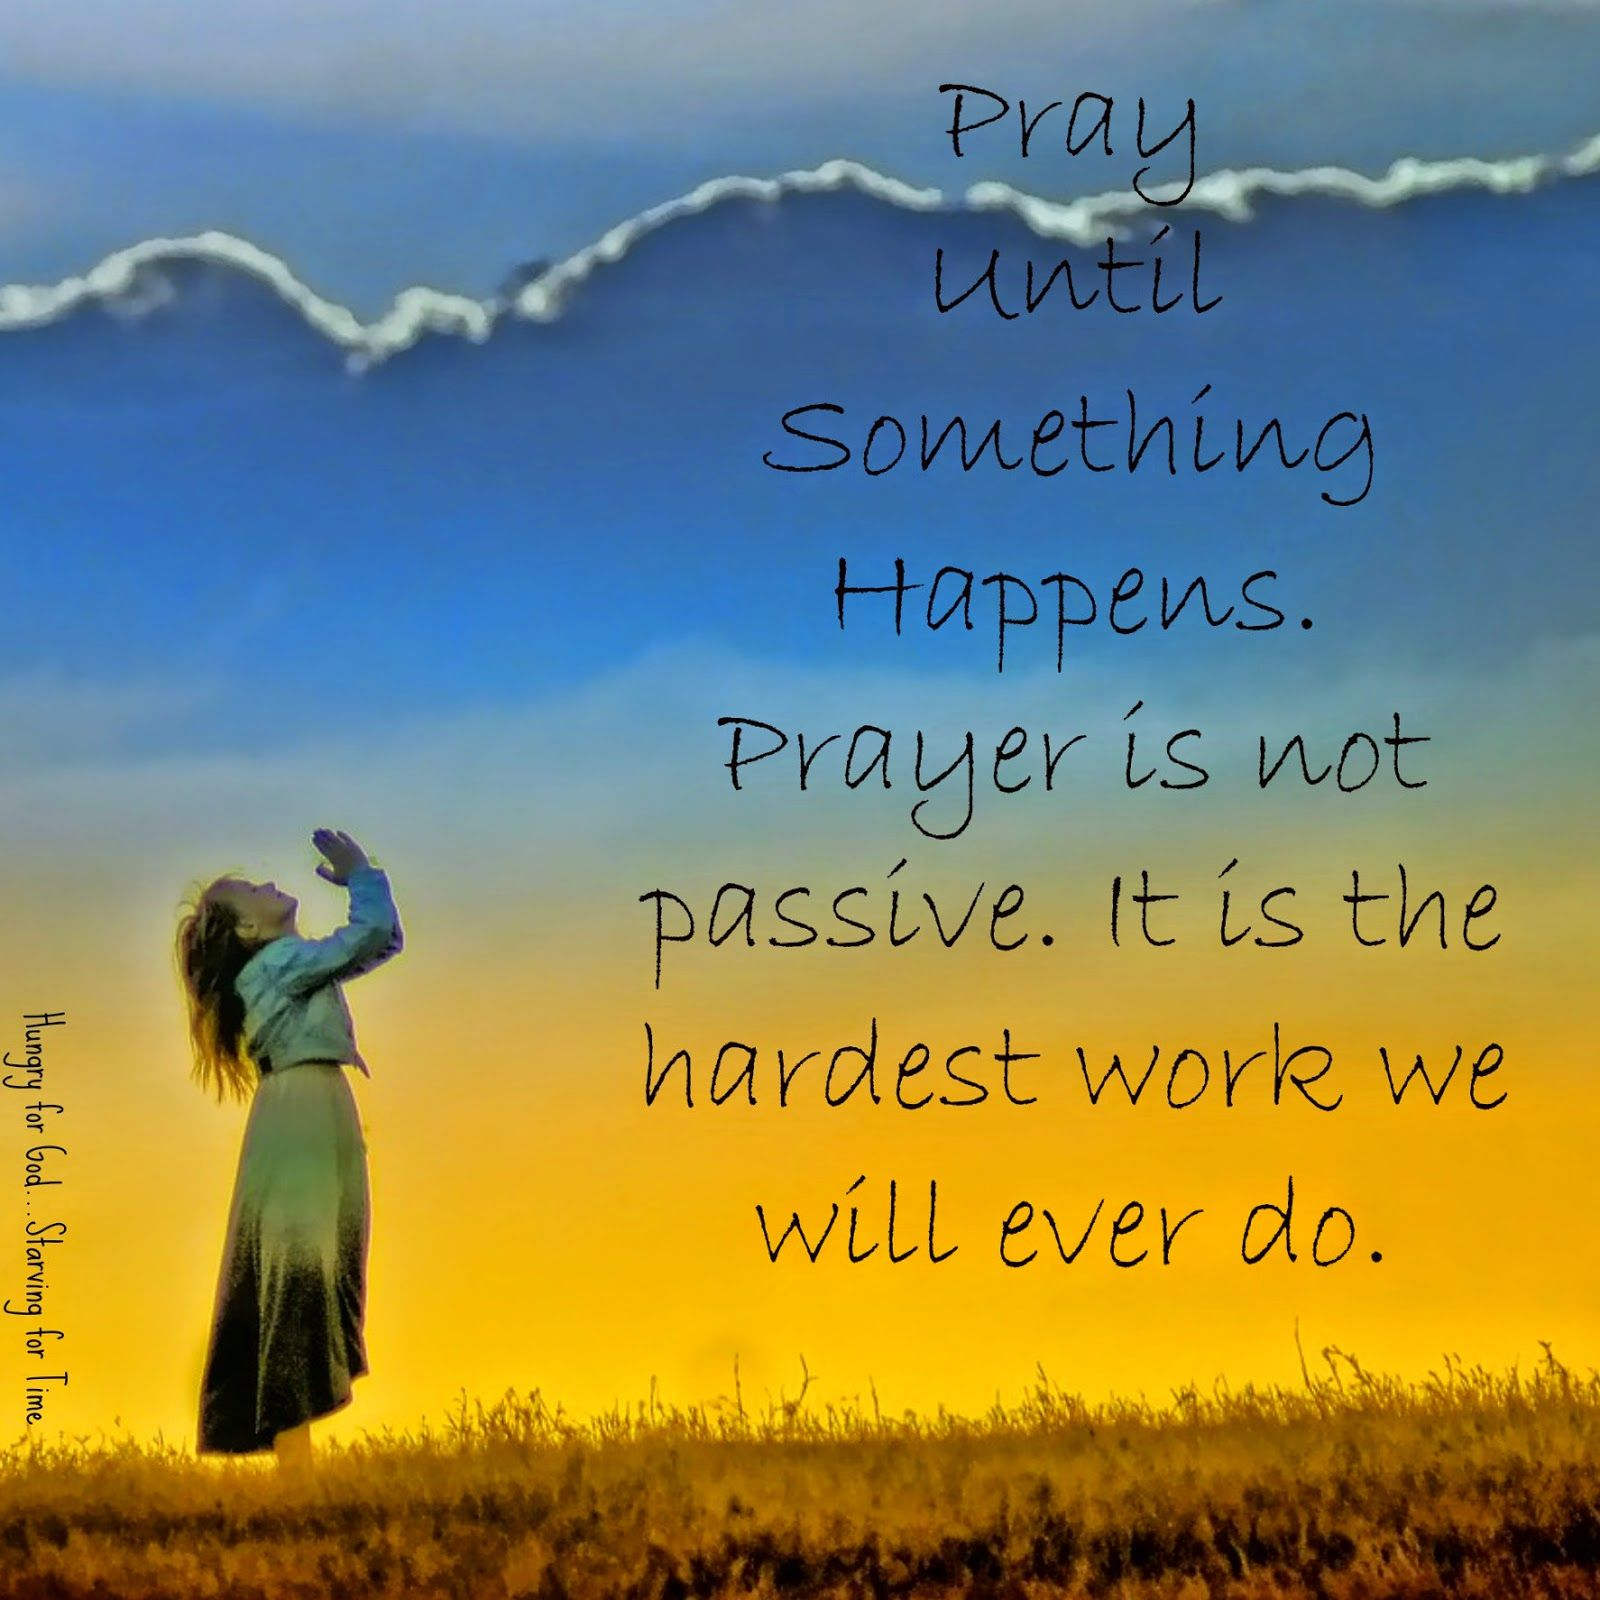 Pray until something happens. Prayer is not passive. It is the hardest work we will ever do. PUSH! - Pray Until Something Happens